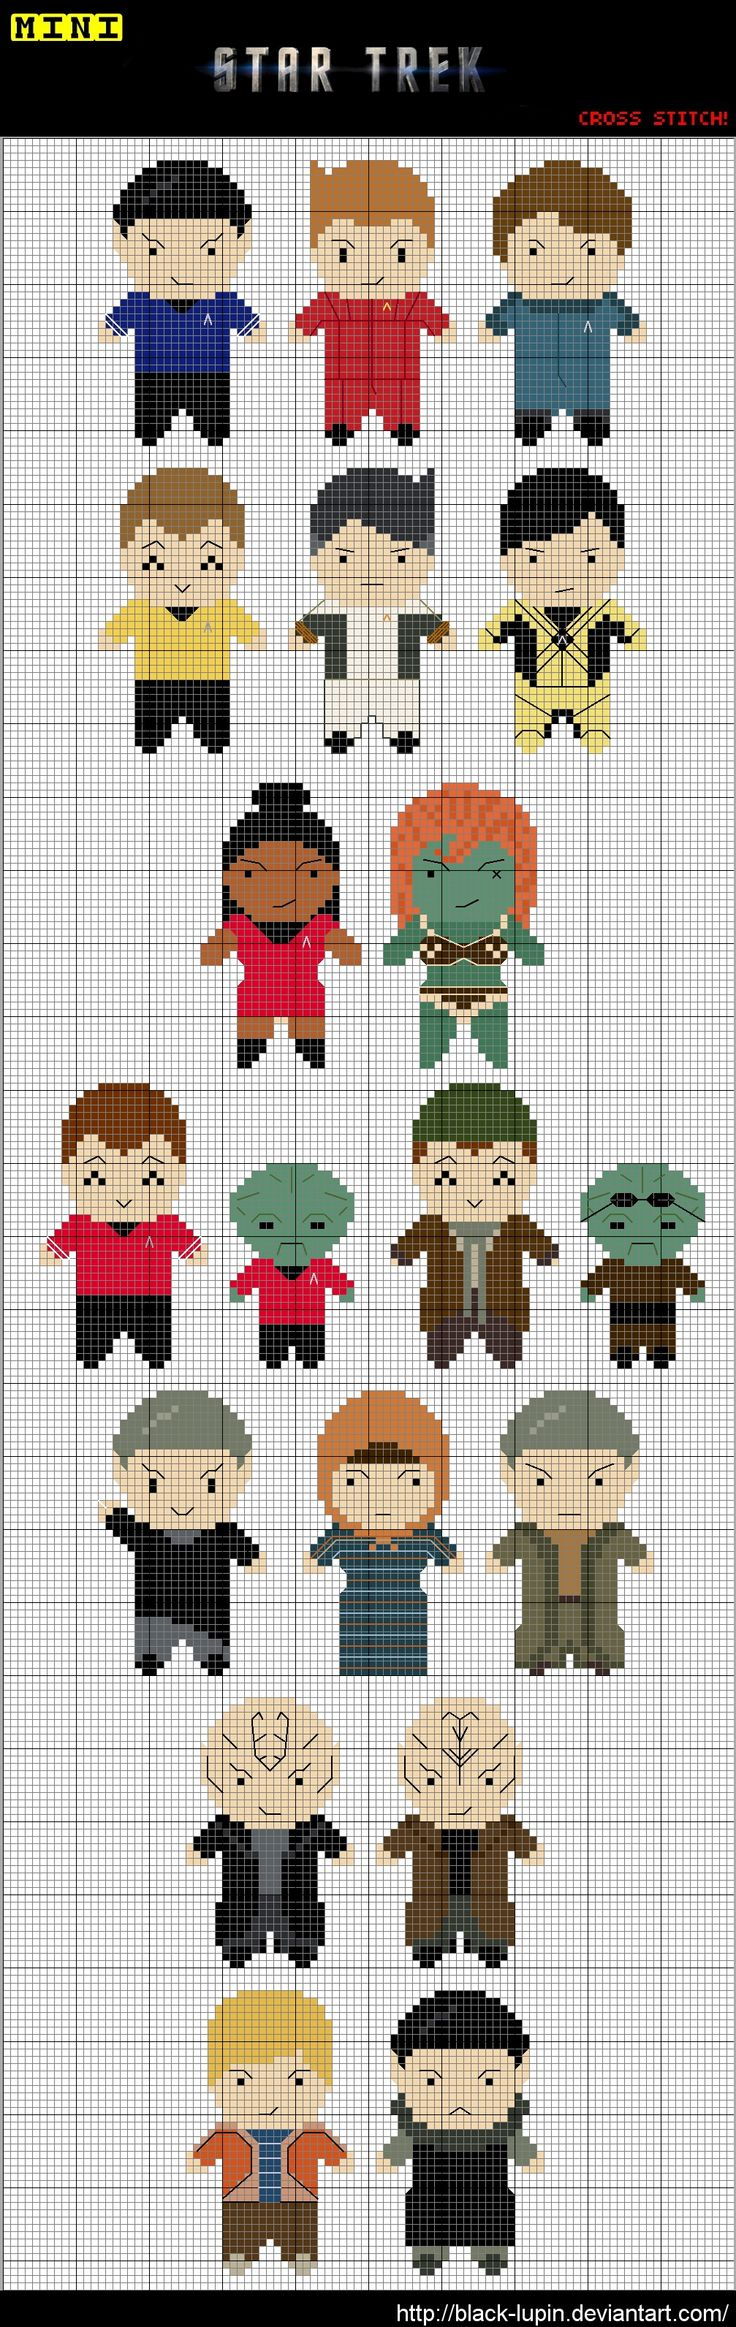 Star Trek - cross stitch